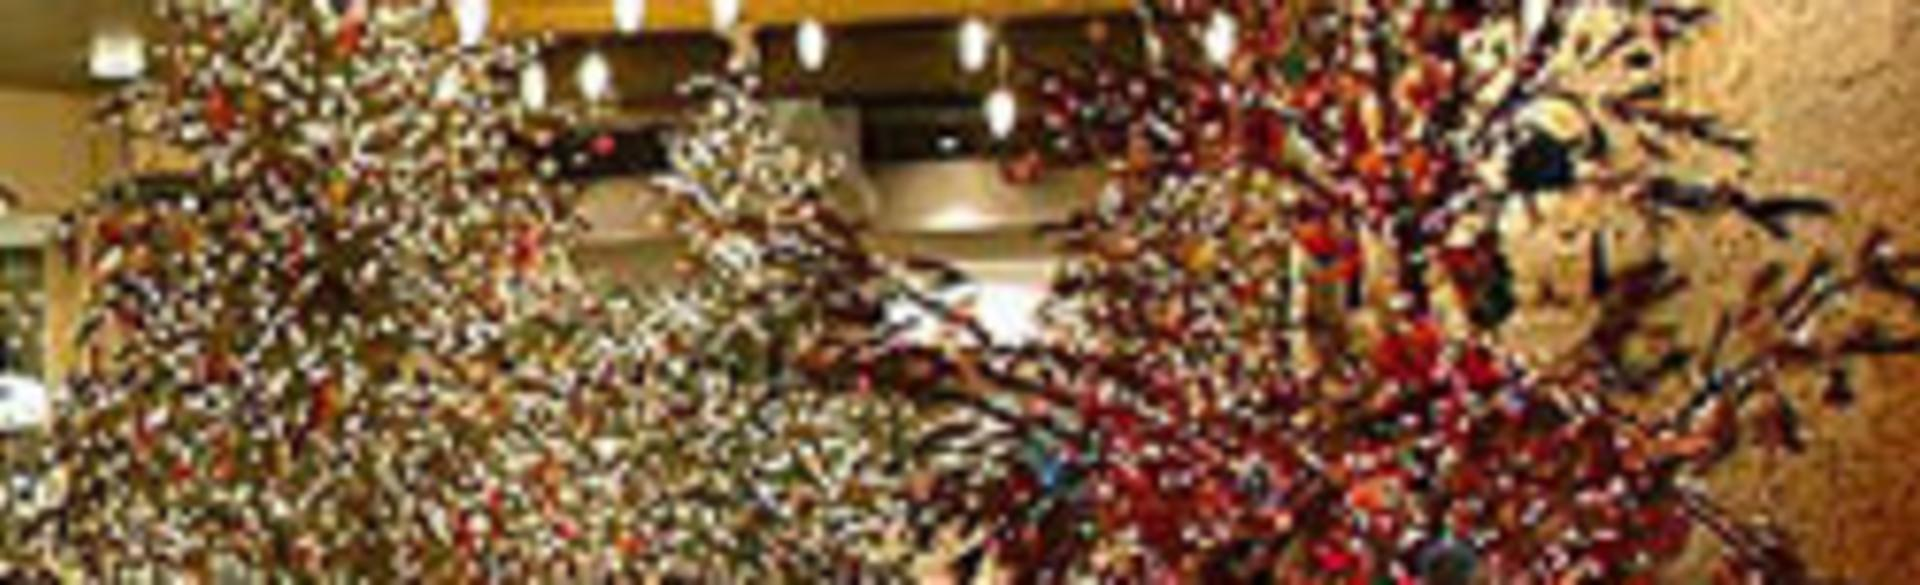 Grand Rapids Holiday Shopping | Experience Grand Rapids